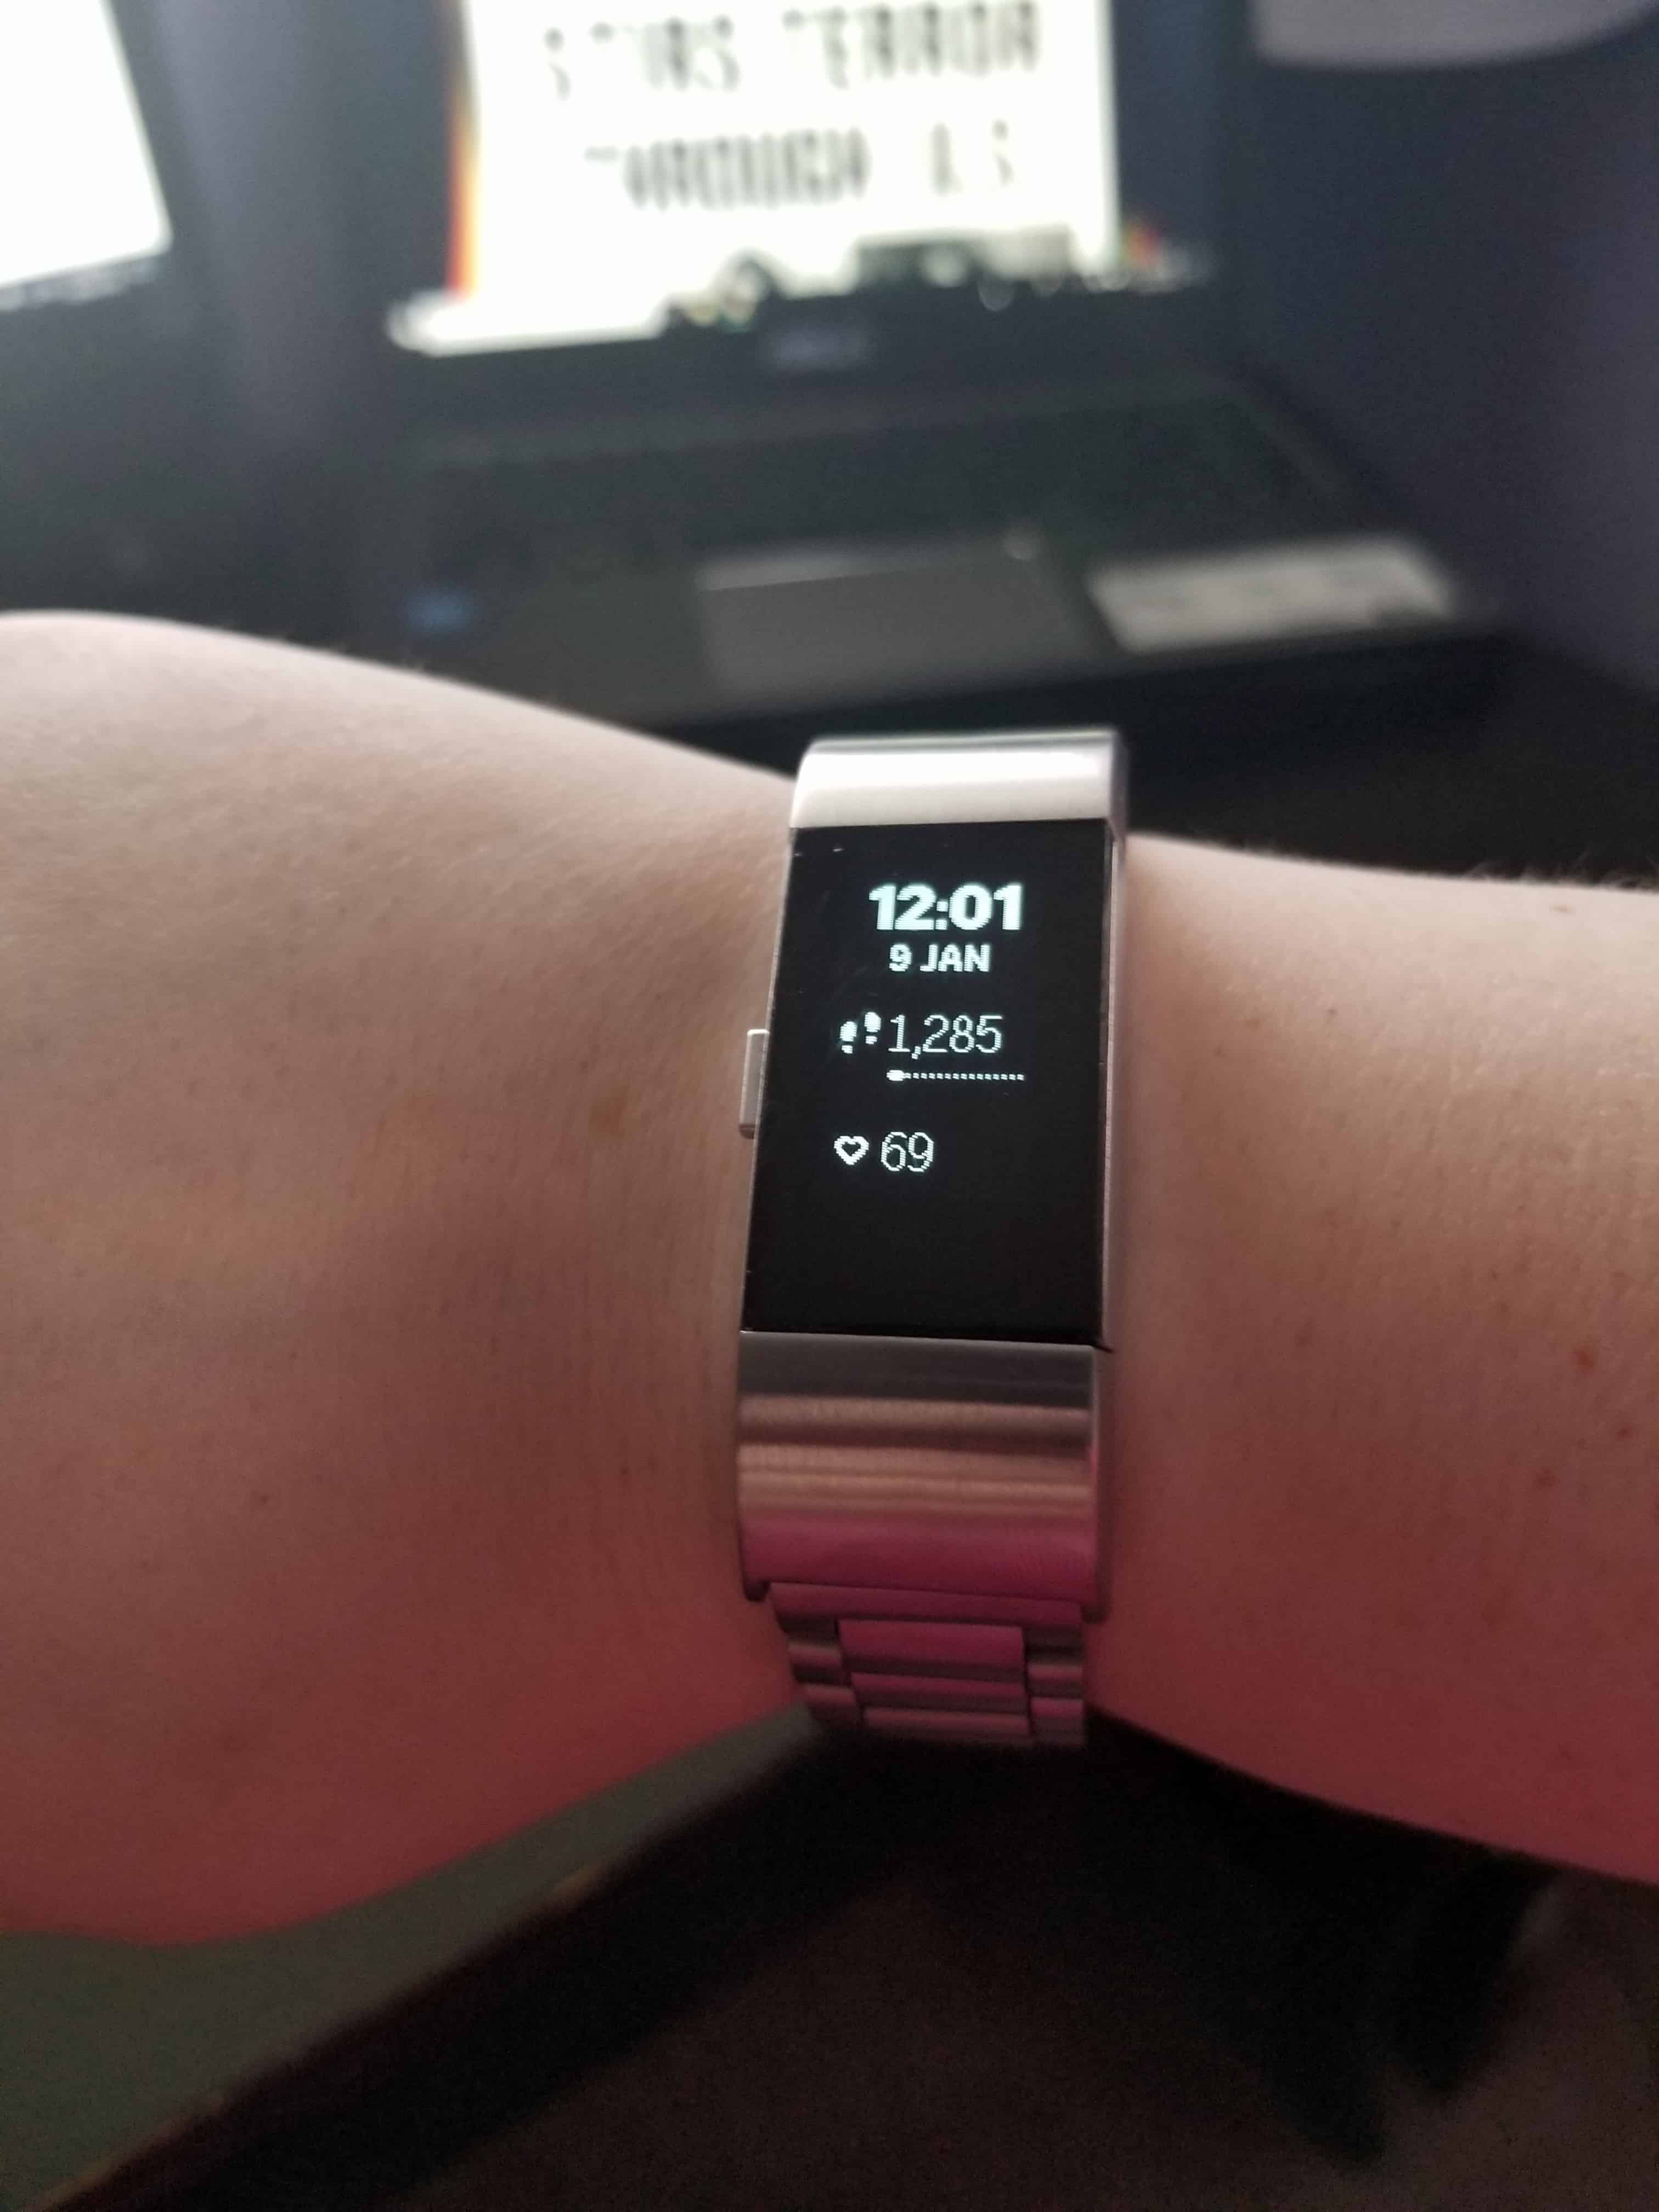 New Fitbit Charge 2 Band January 11 2019 - Get Fit Fiona